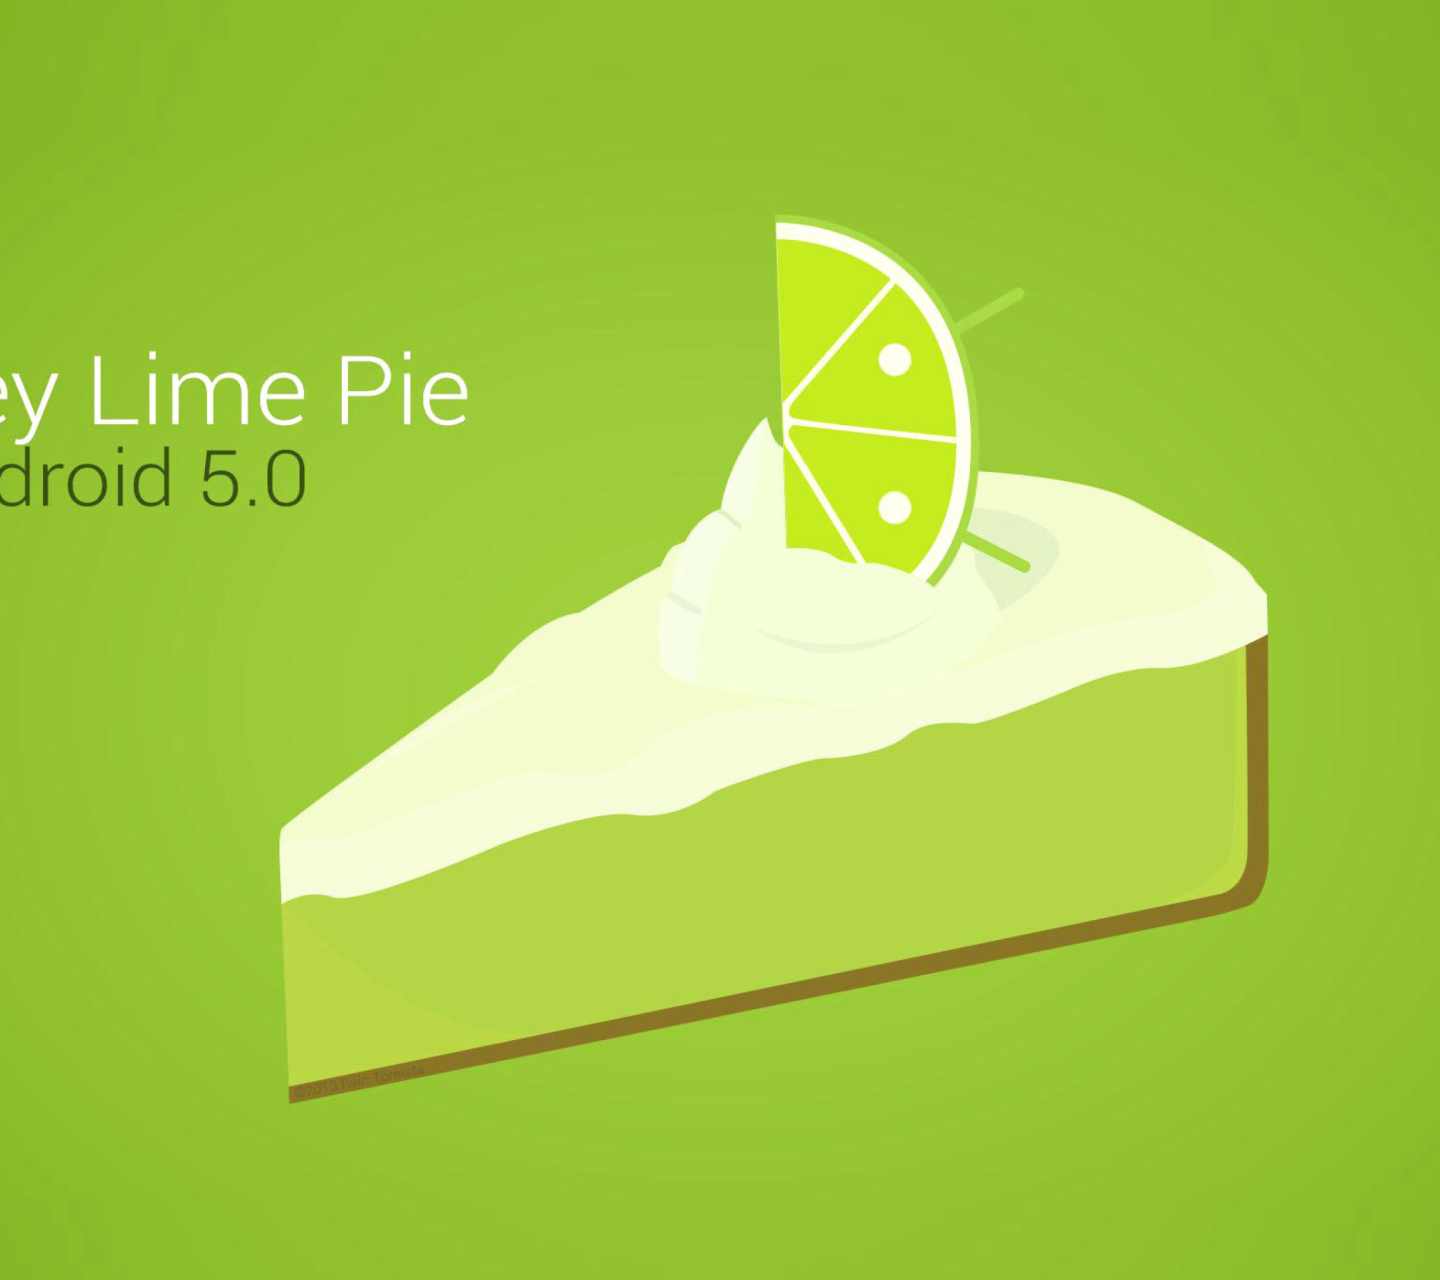 Sfondi Concept Android 5.0 Key Lime Pie 1440x1280